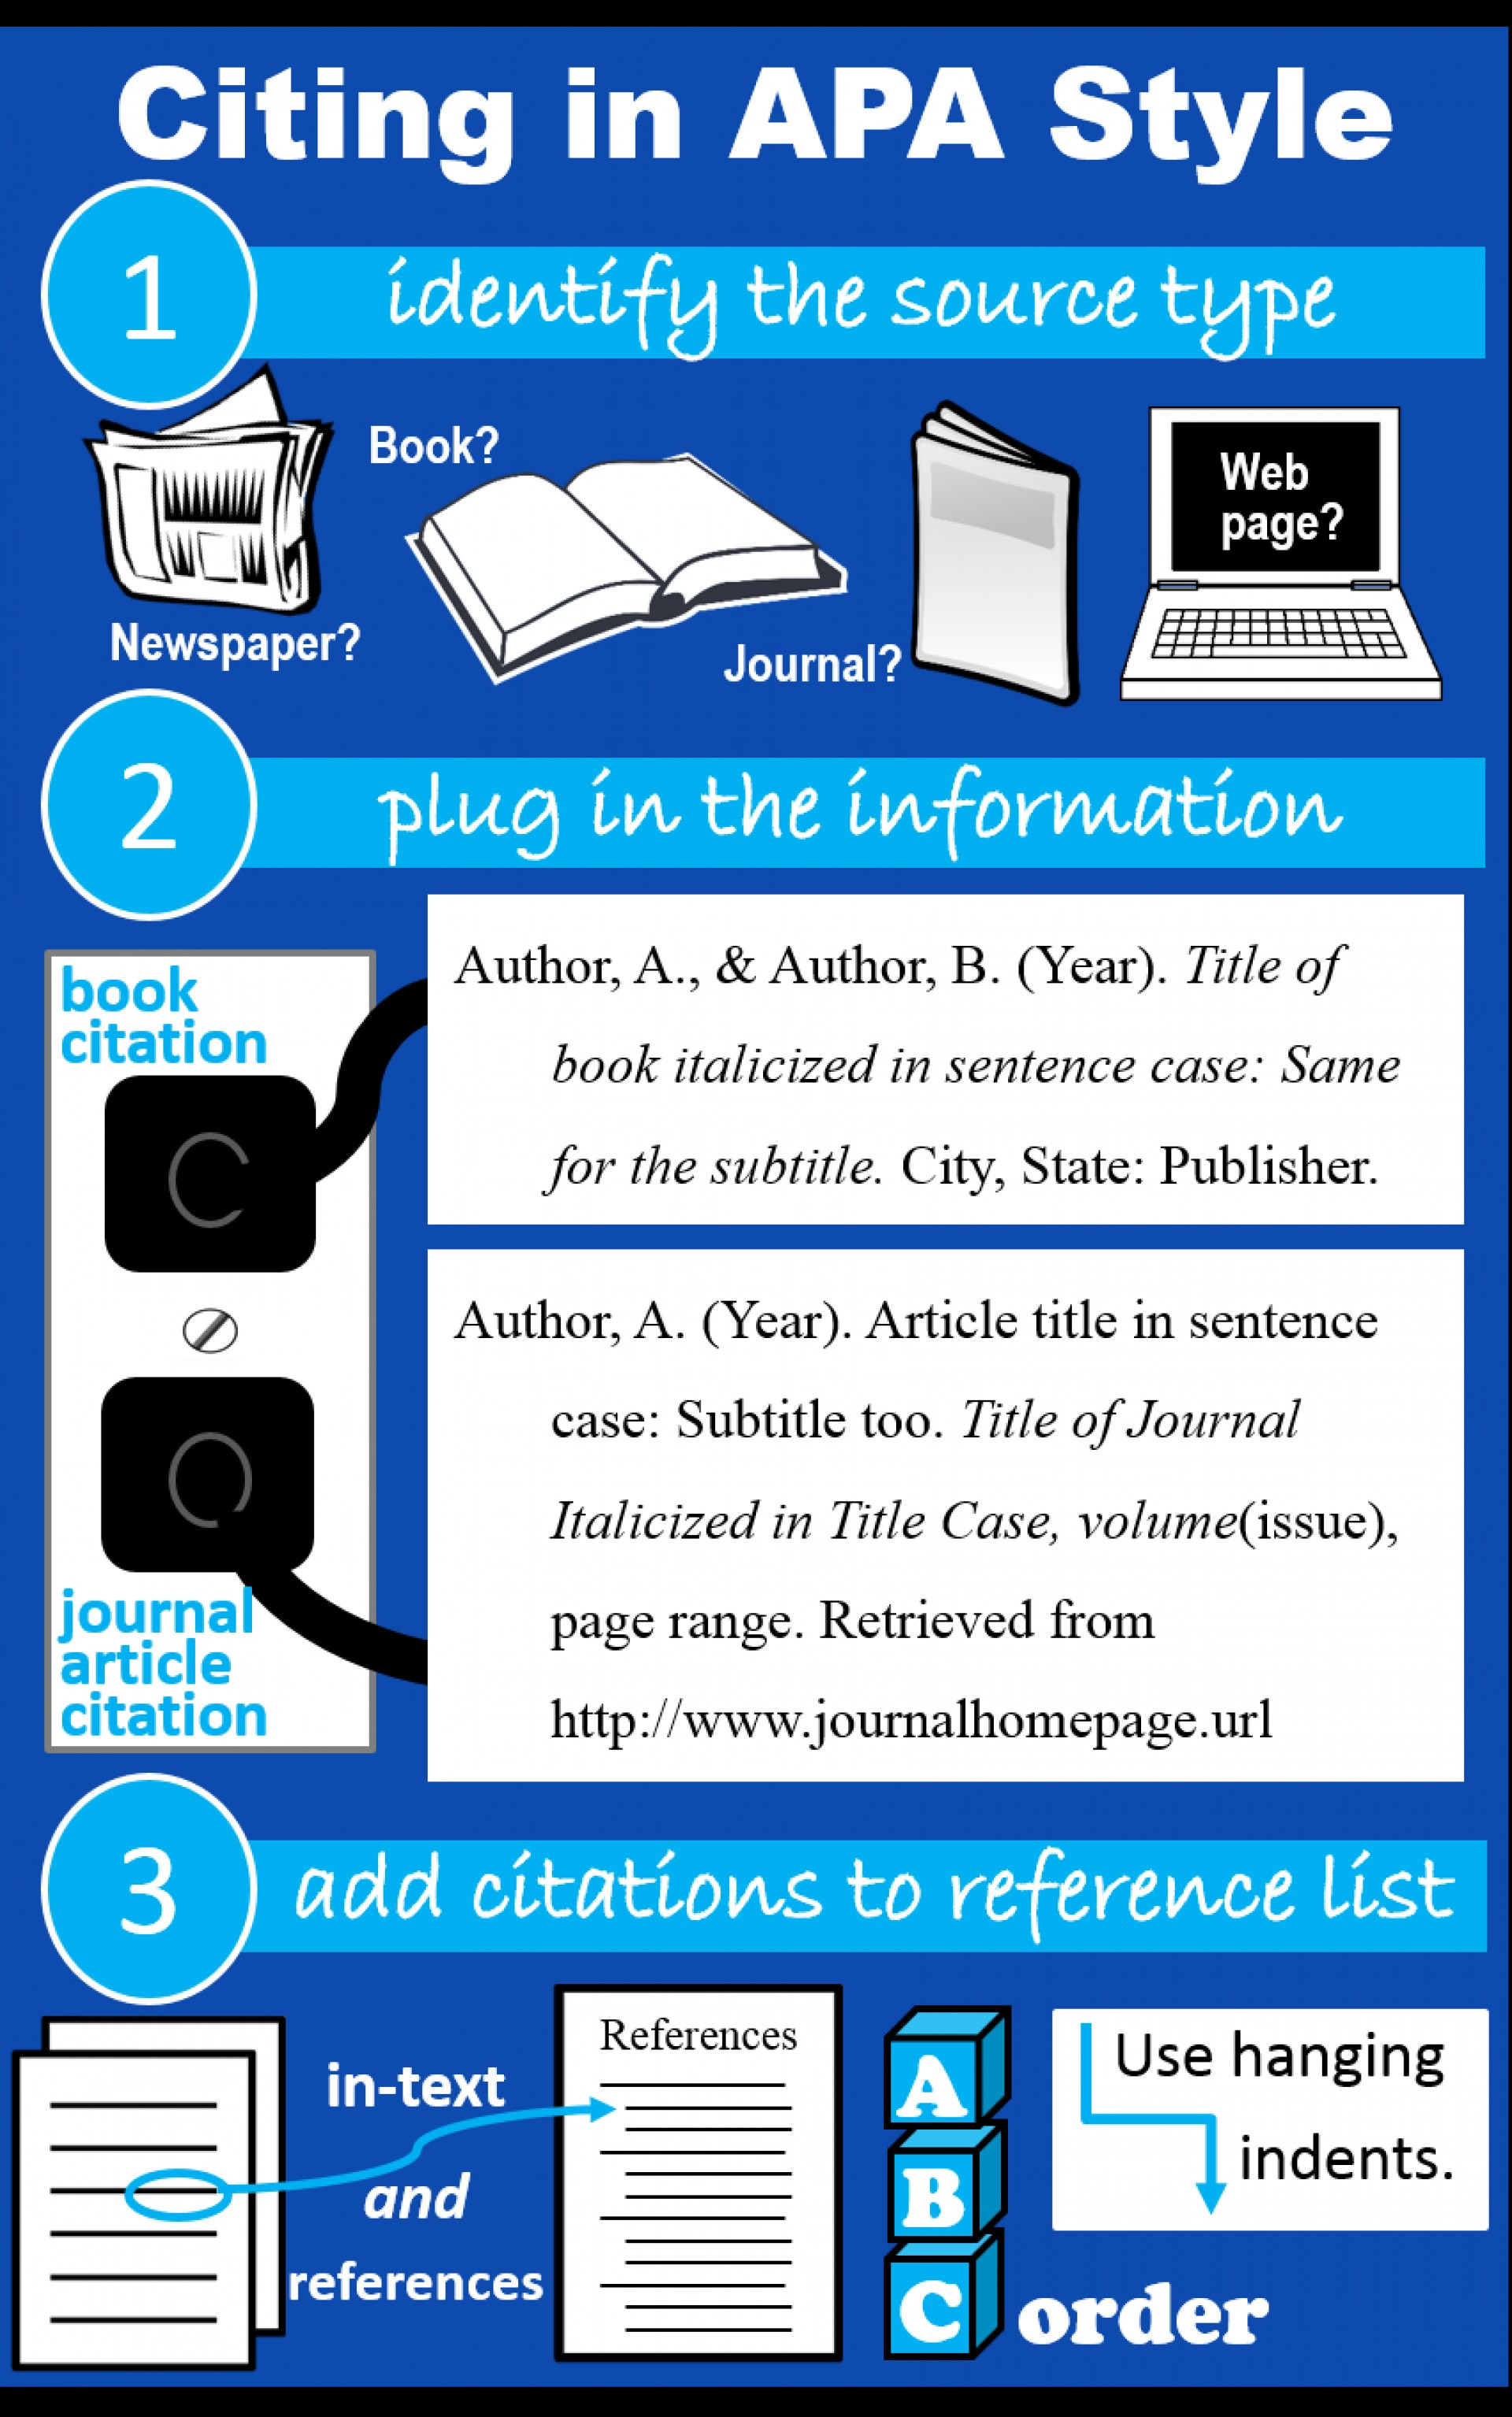 018 Citing Sources In Research Paper Apa Infographic Astounding Paragraph 1920